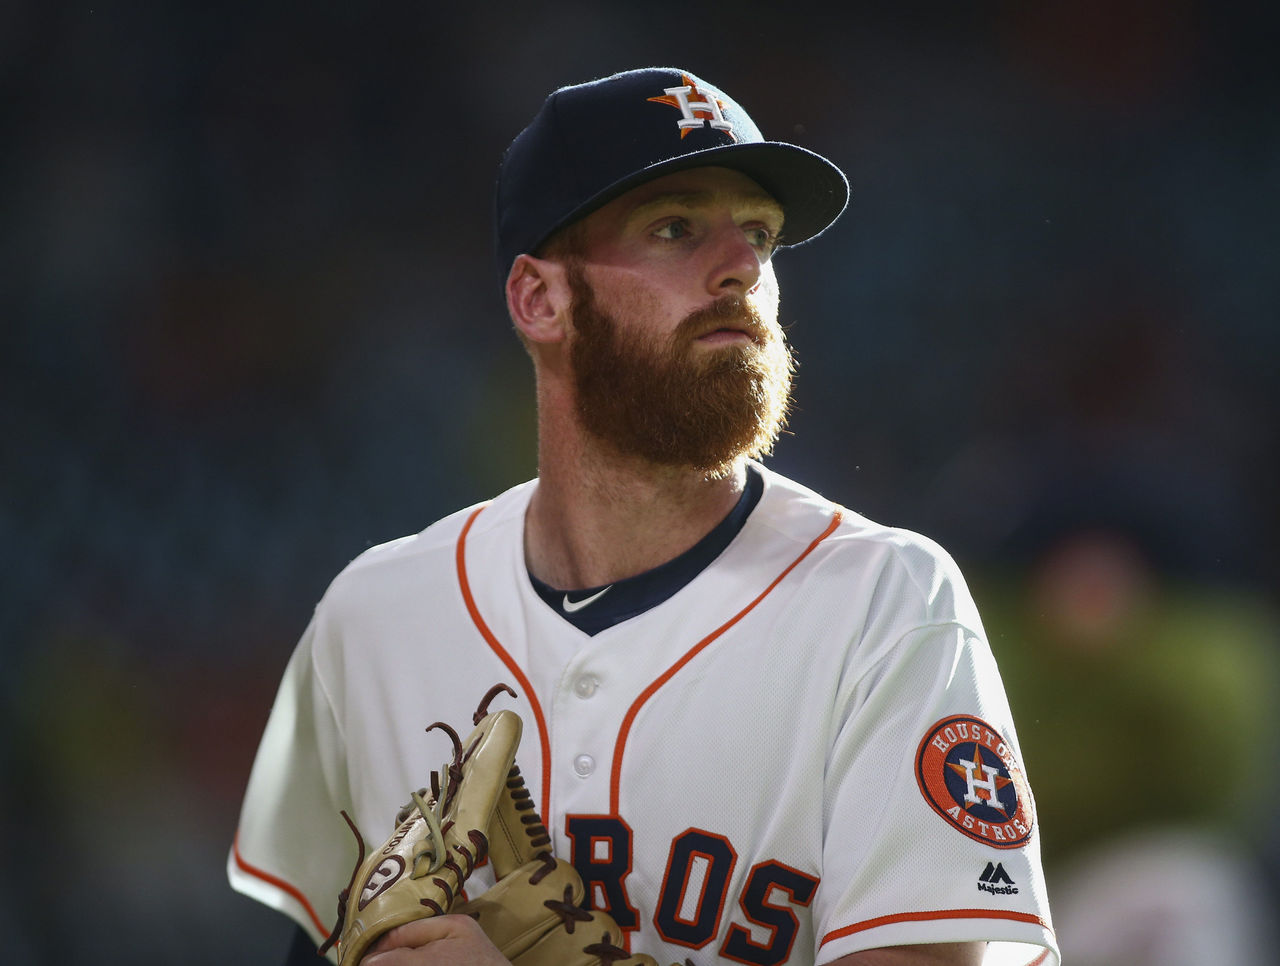 Cropped_2017-07-19t000301z_1952514068_nocid_rtrmadp_3_mlb-seattle-mariners-at-houston-astros